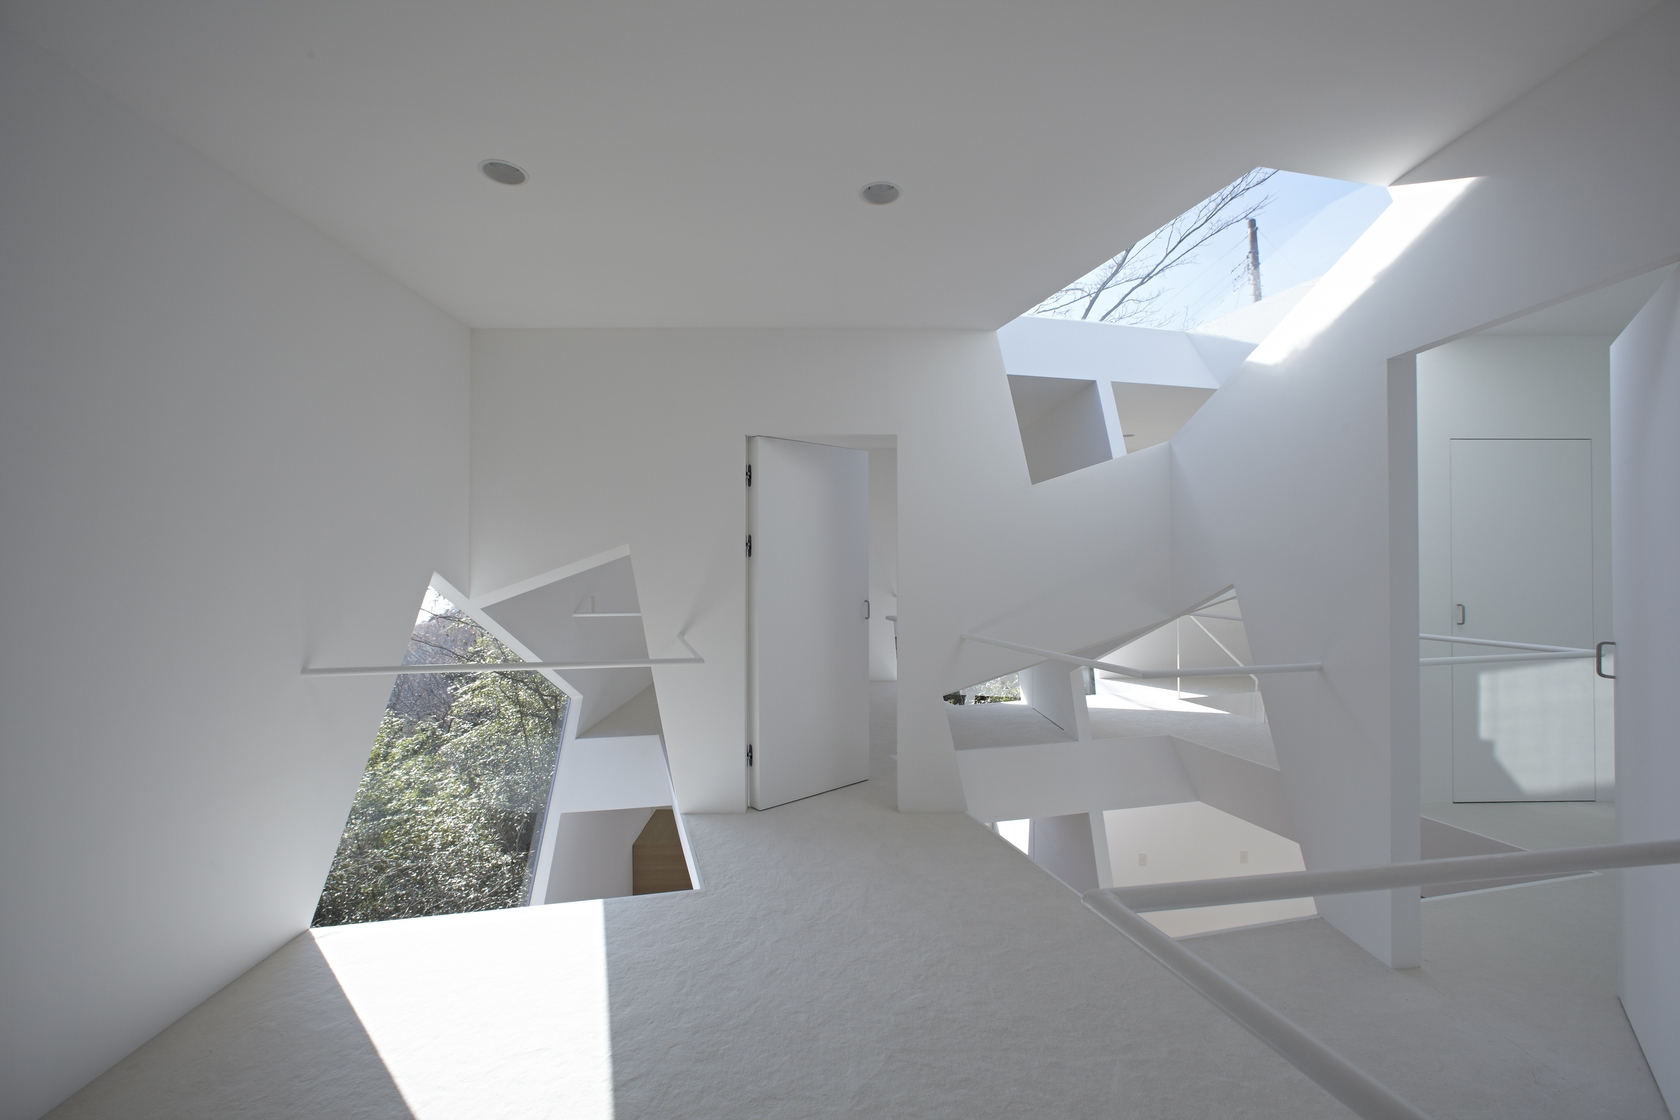 Angular Walls - Minimalist home in the mountains